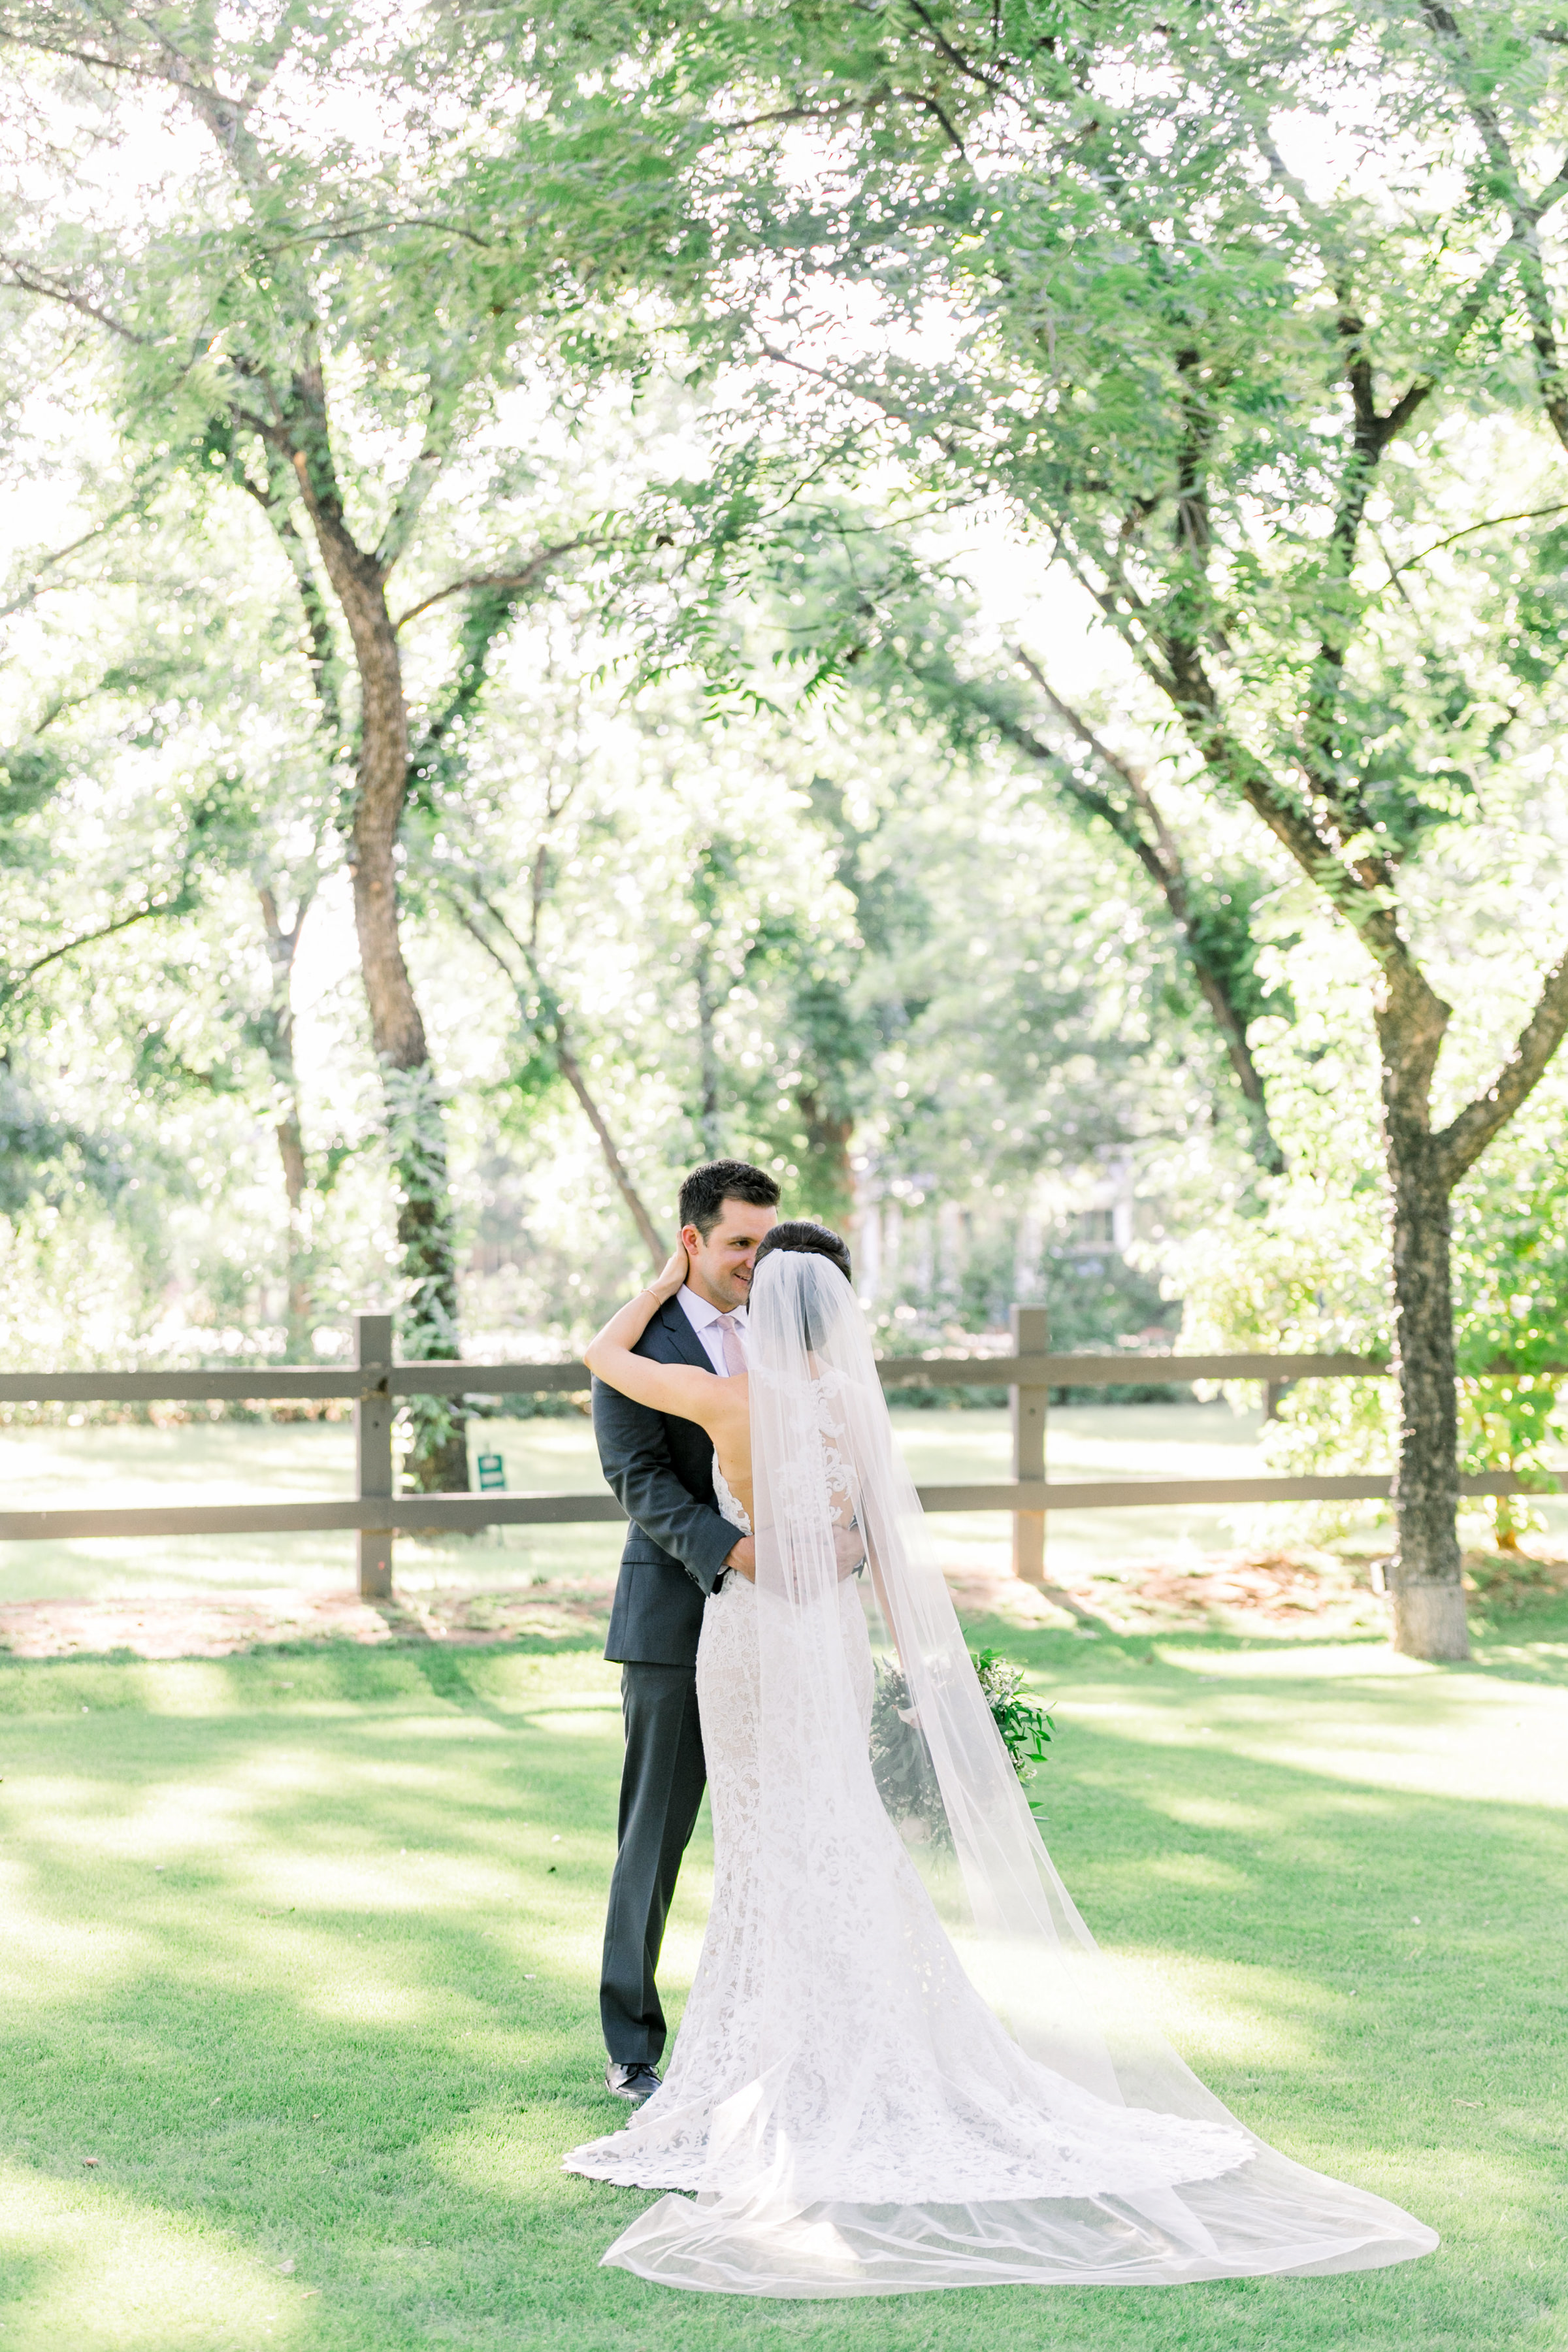 Karlie Colleen Photography - Venue At The Grove - Arizona Wedding - Maggie & Grant -66